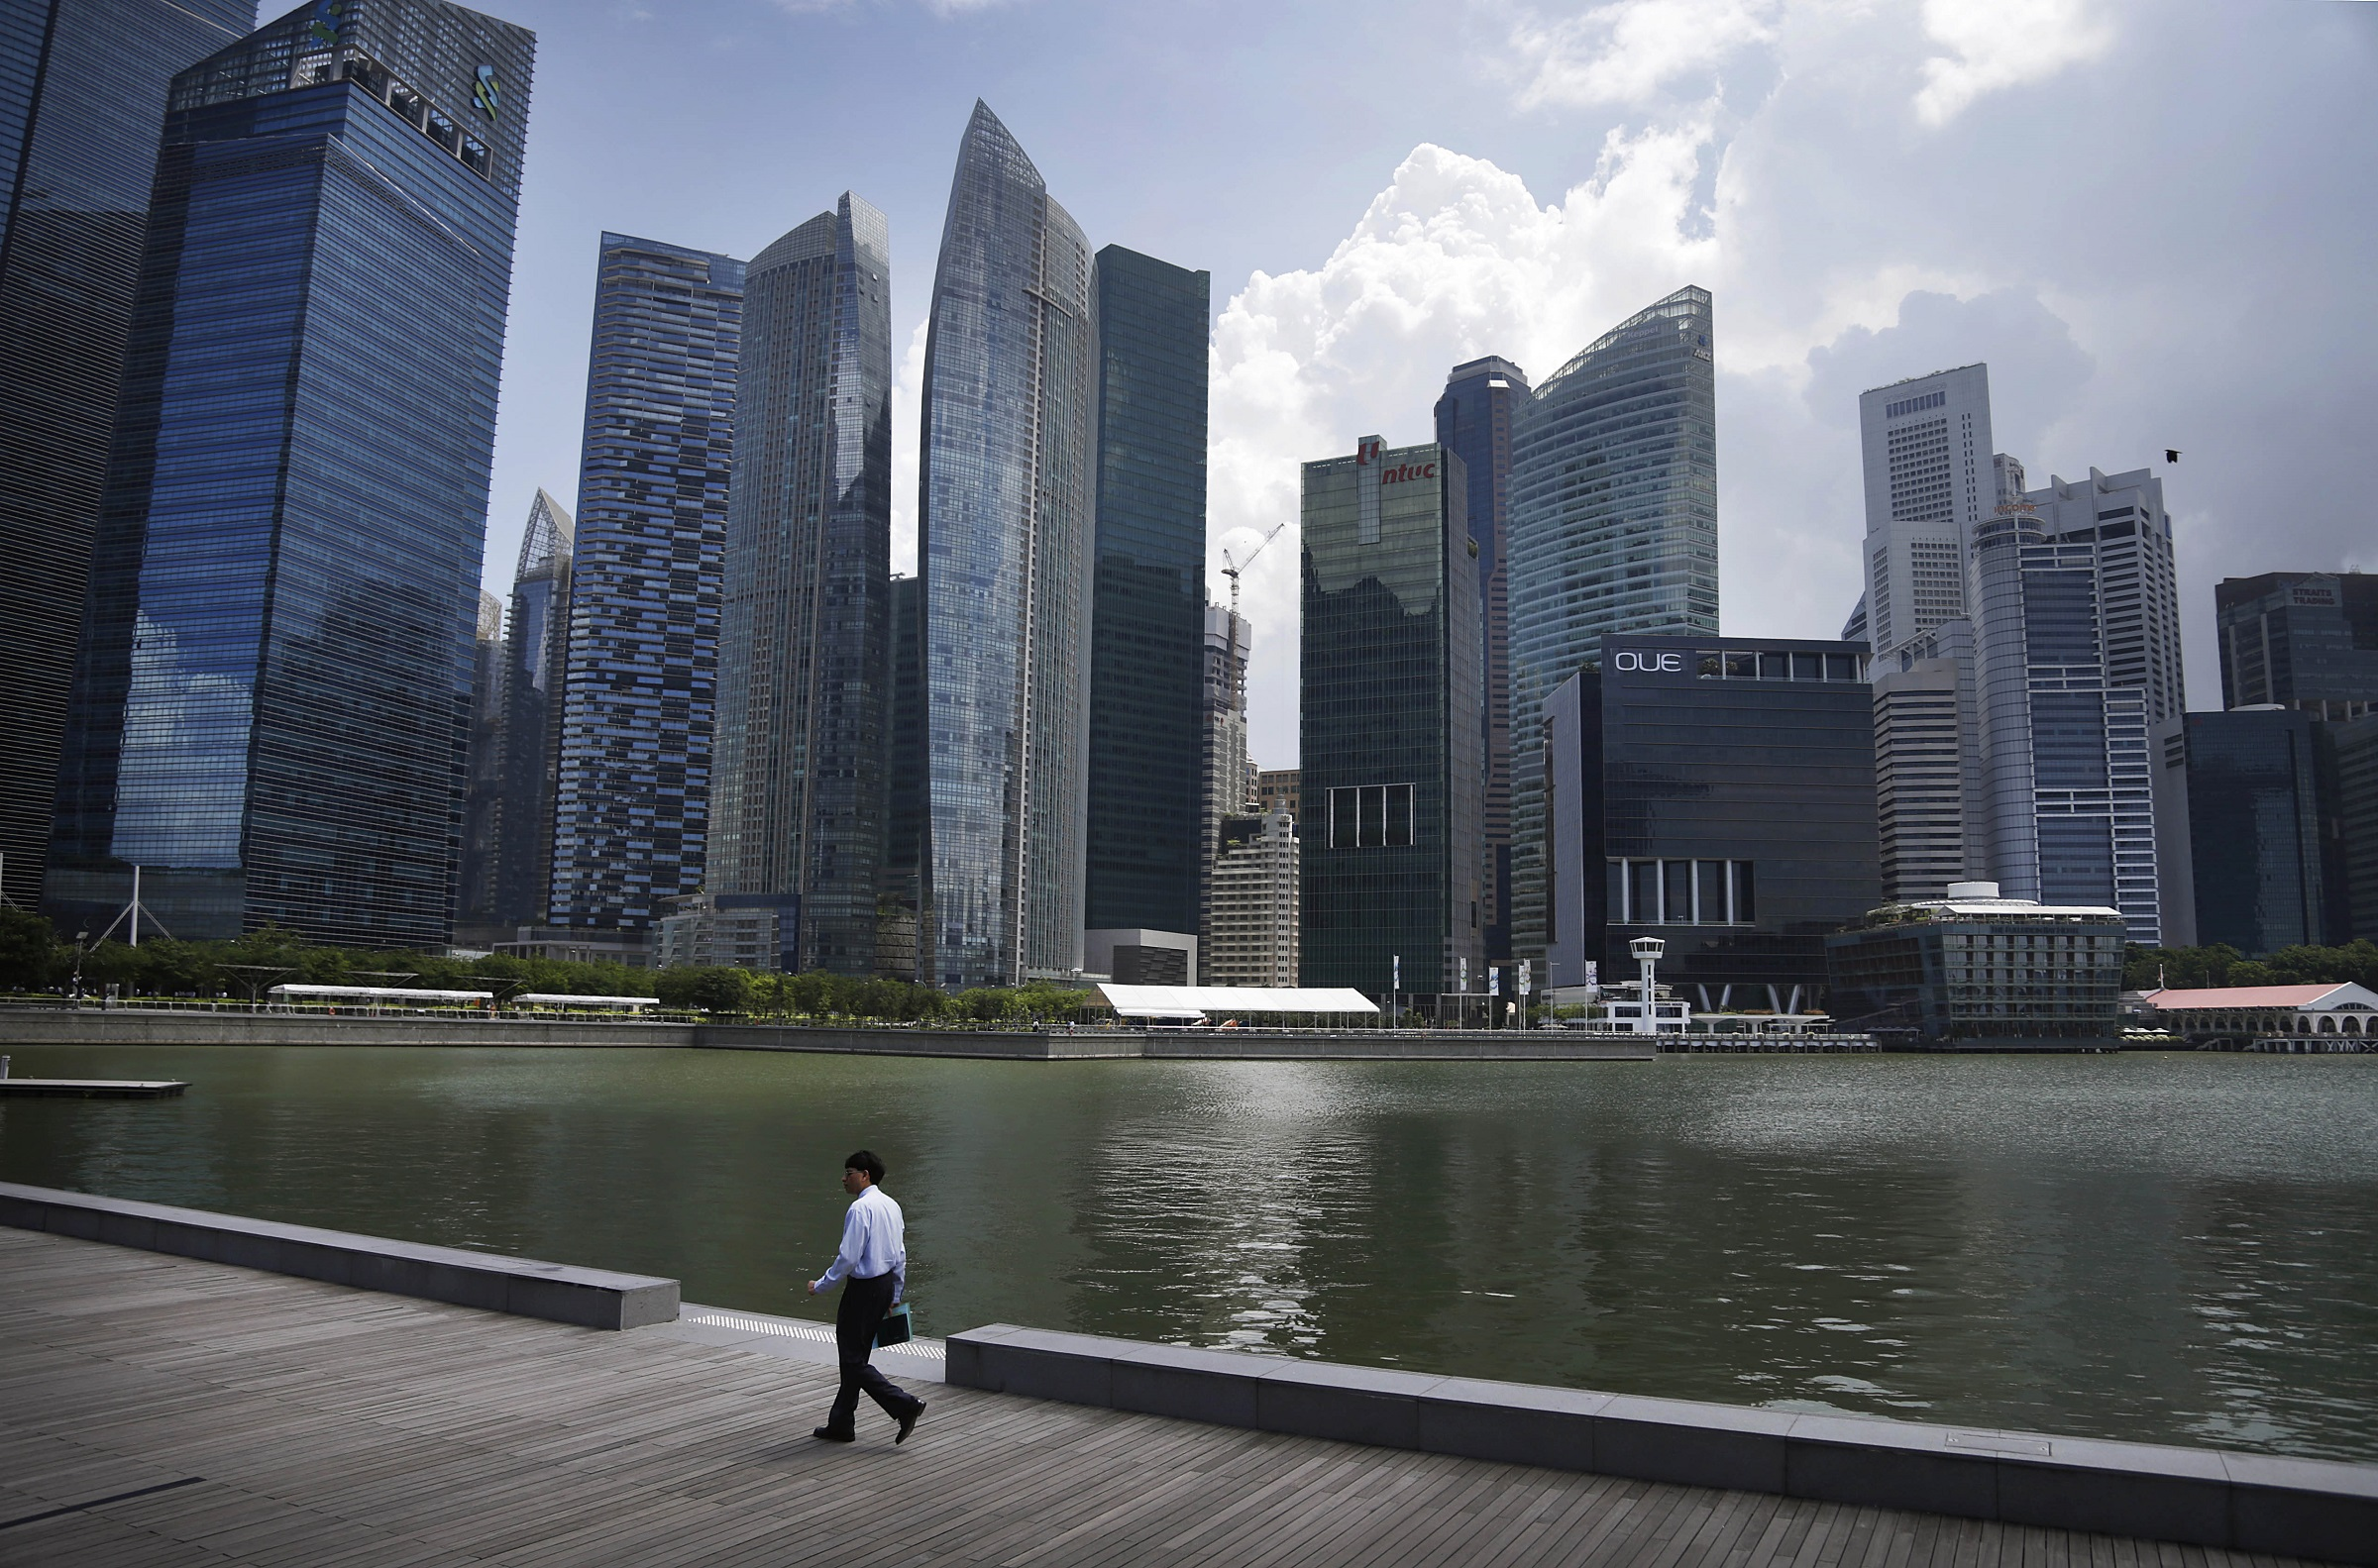 An office worker walks along the Singapore River front during the lunch hour Monday, May 5, 2014 in the central business district of Singapore. (AP Photo/Wong Maye-E)